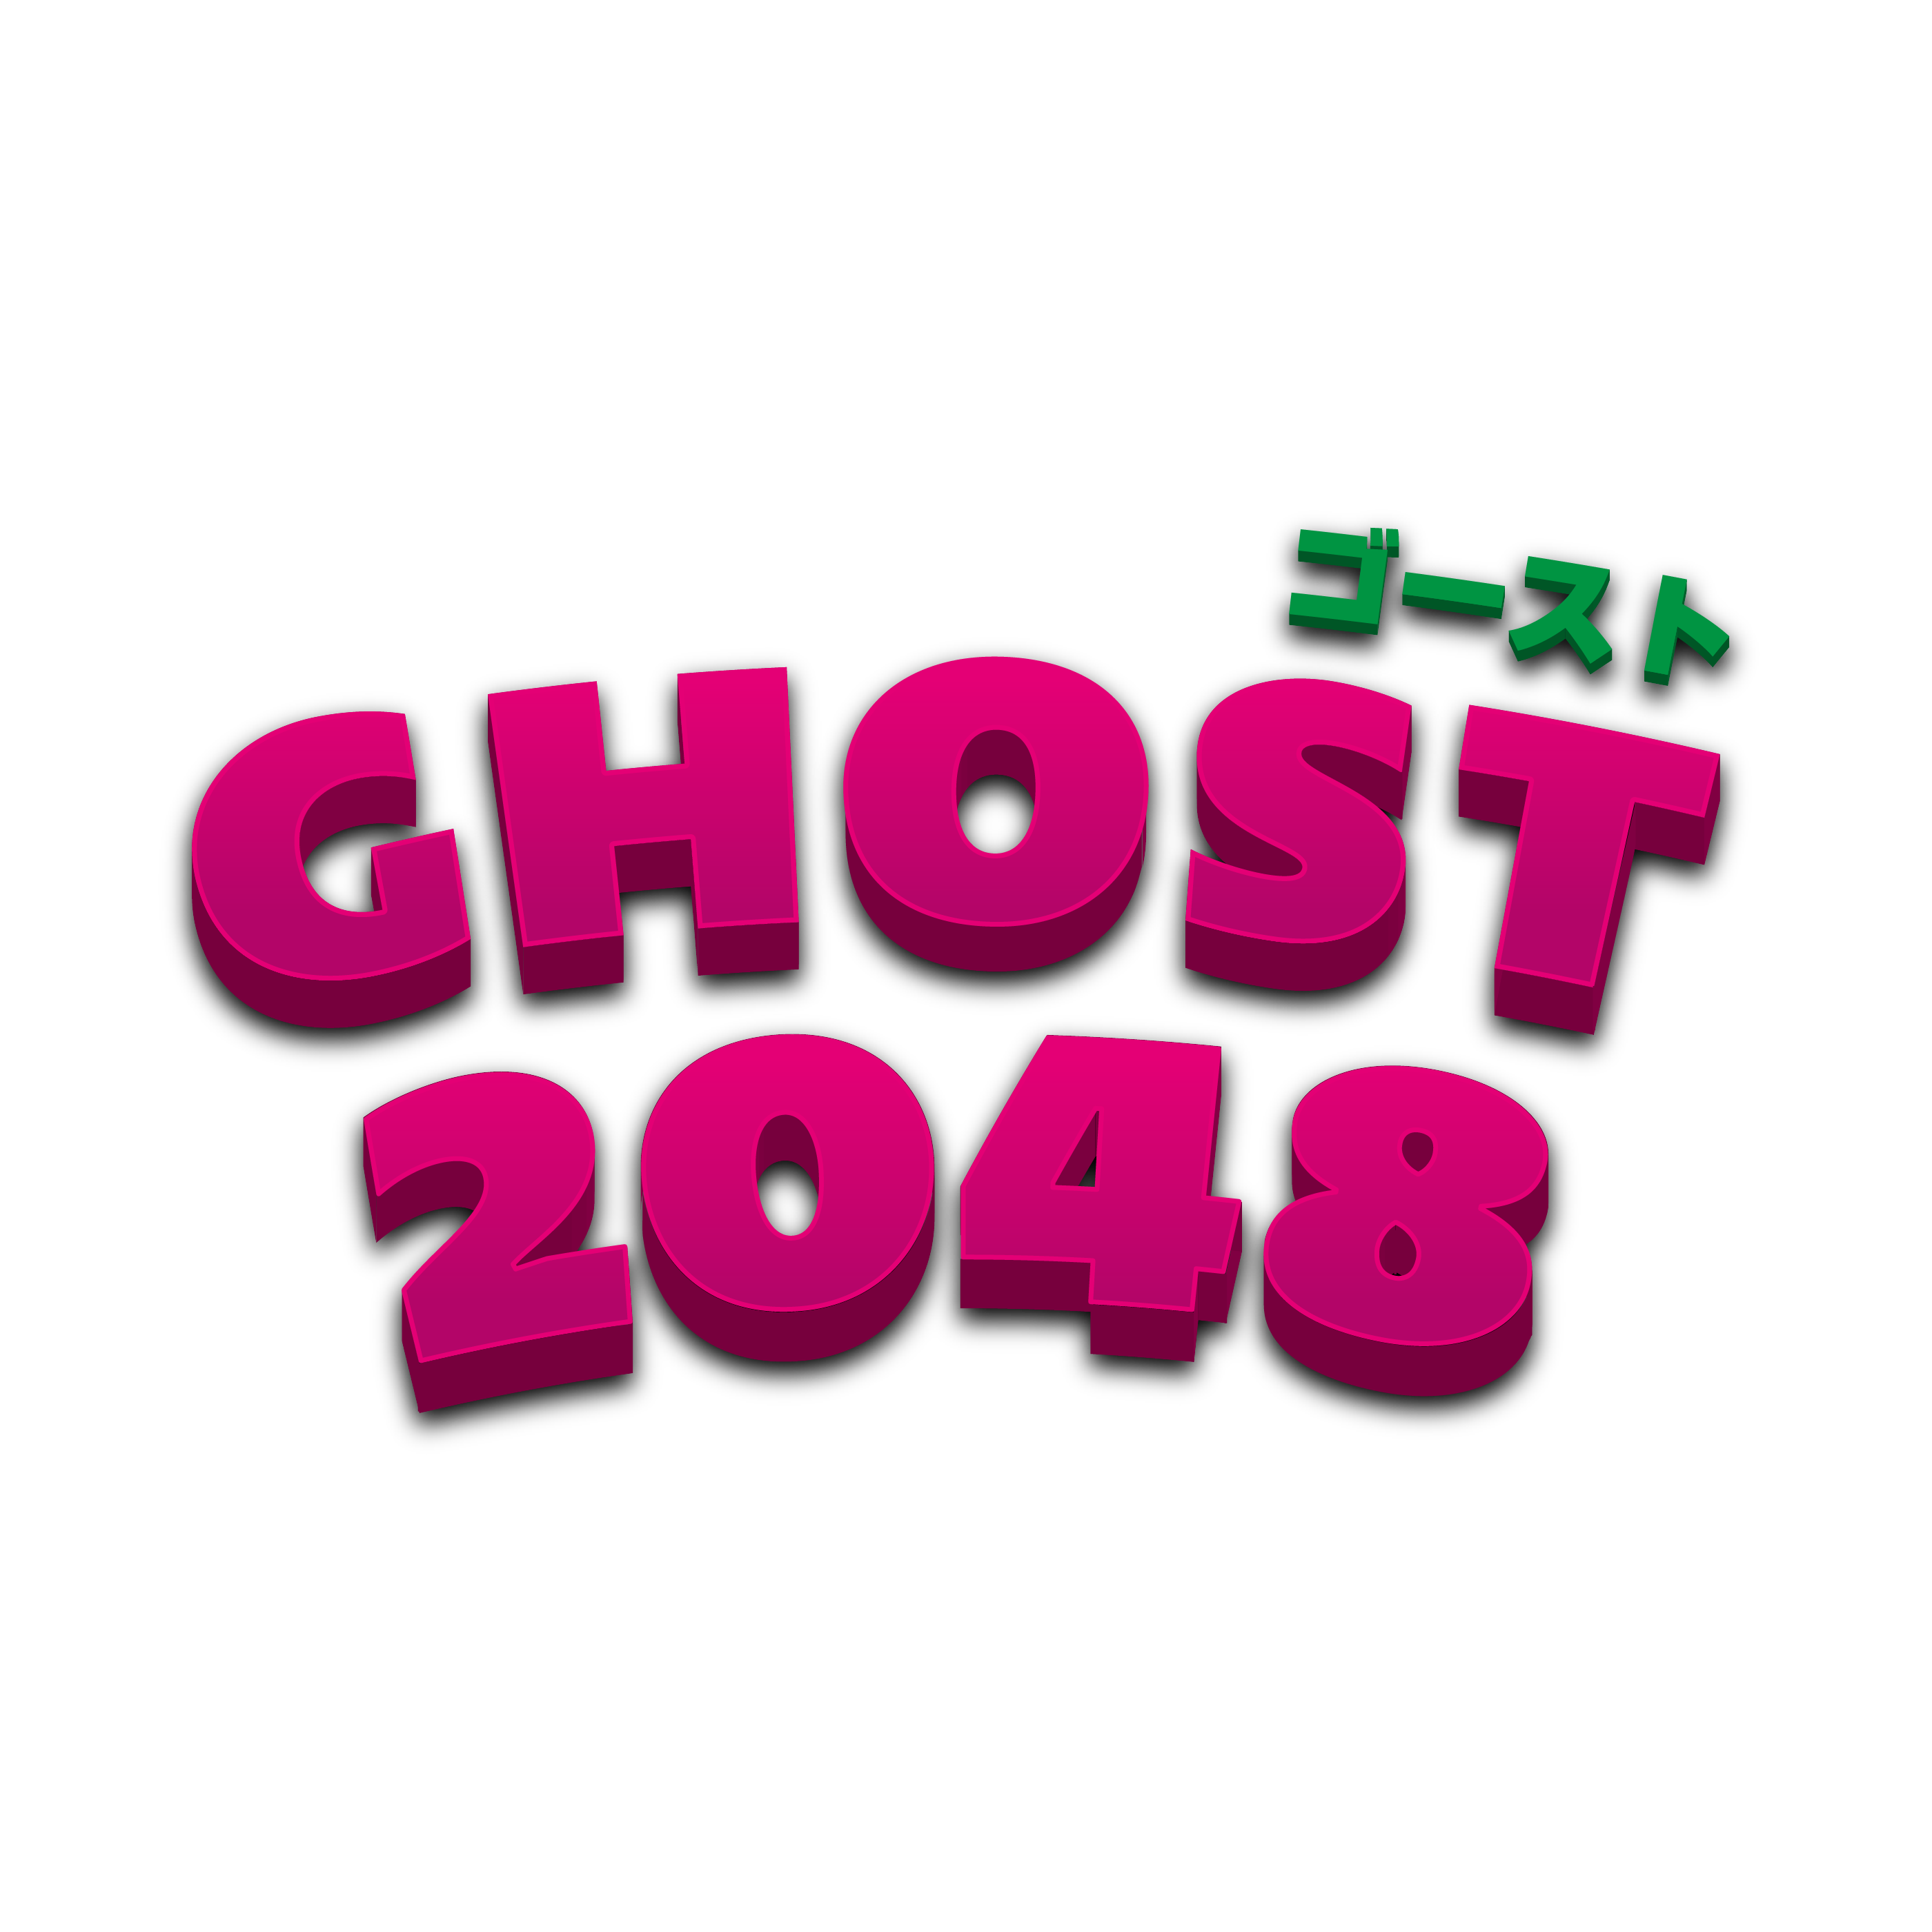 Ghost 2048 ロゴ